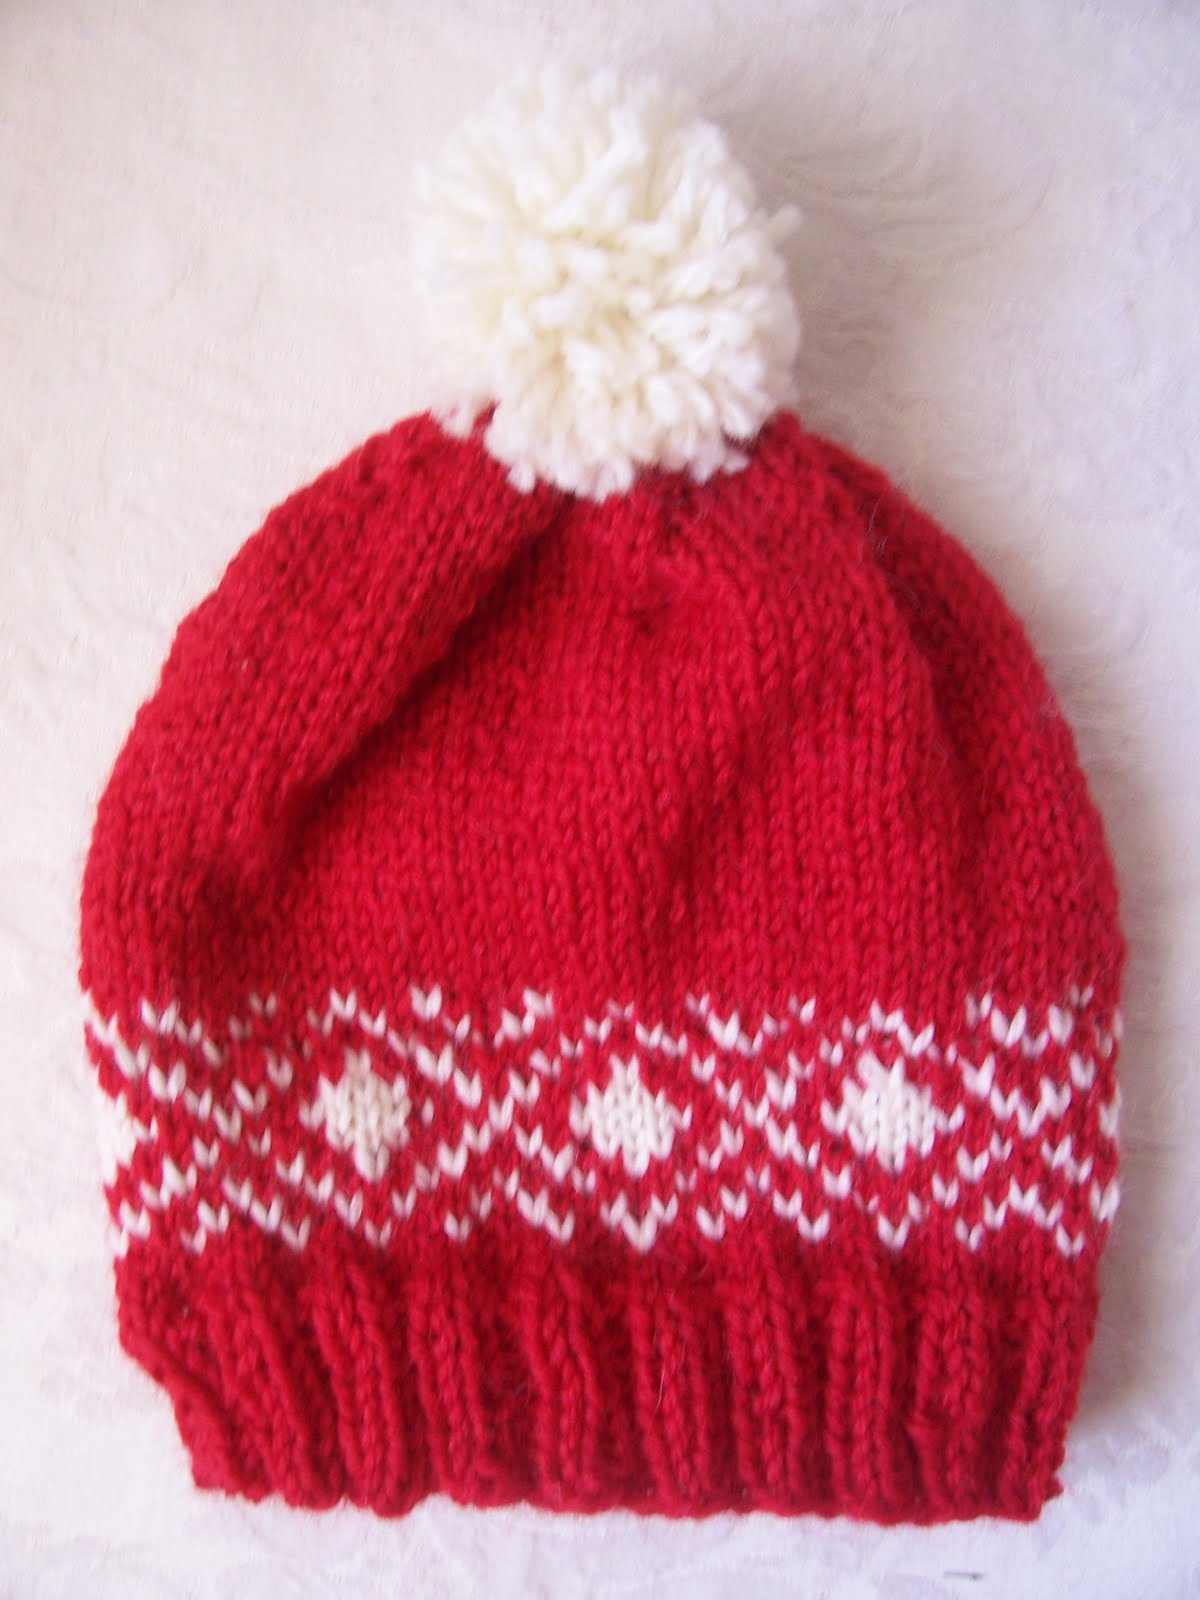 Knitted Throws Free Patterns : Knitting for Peace: Red and White Fair Isle Childs Hat